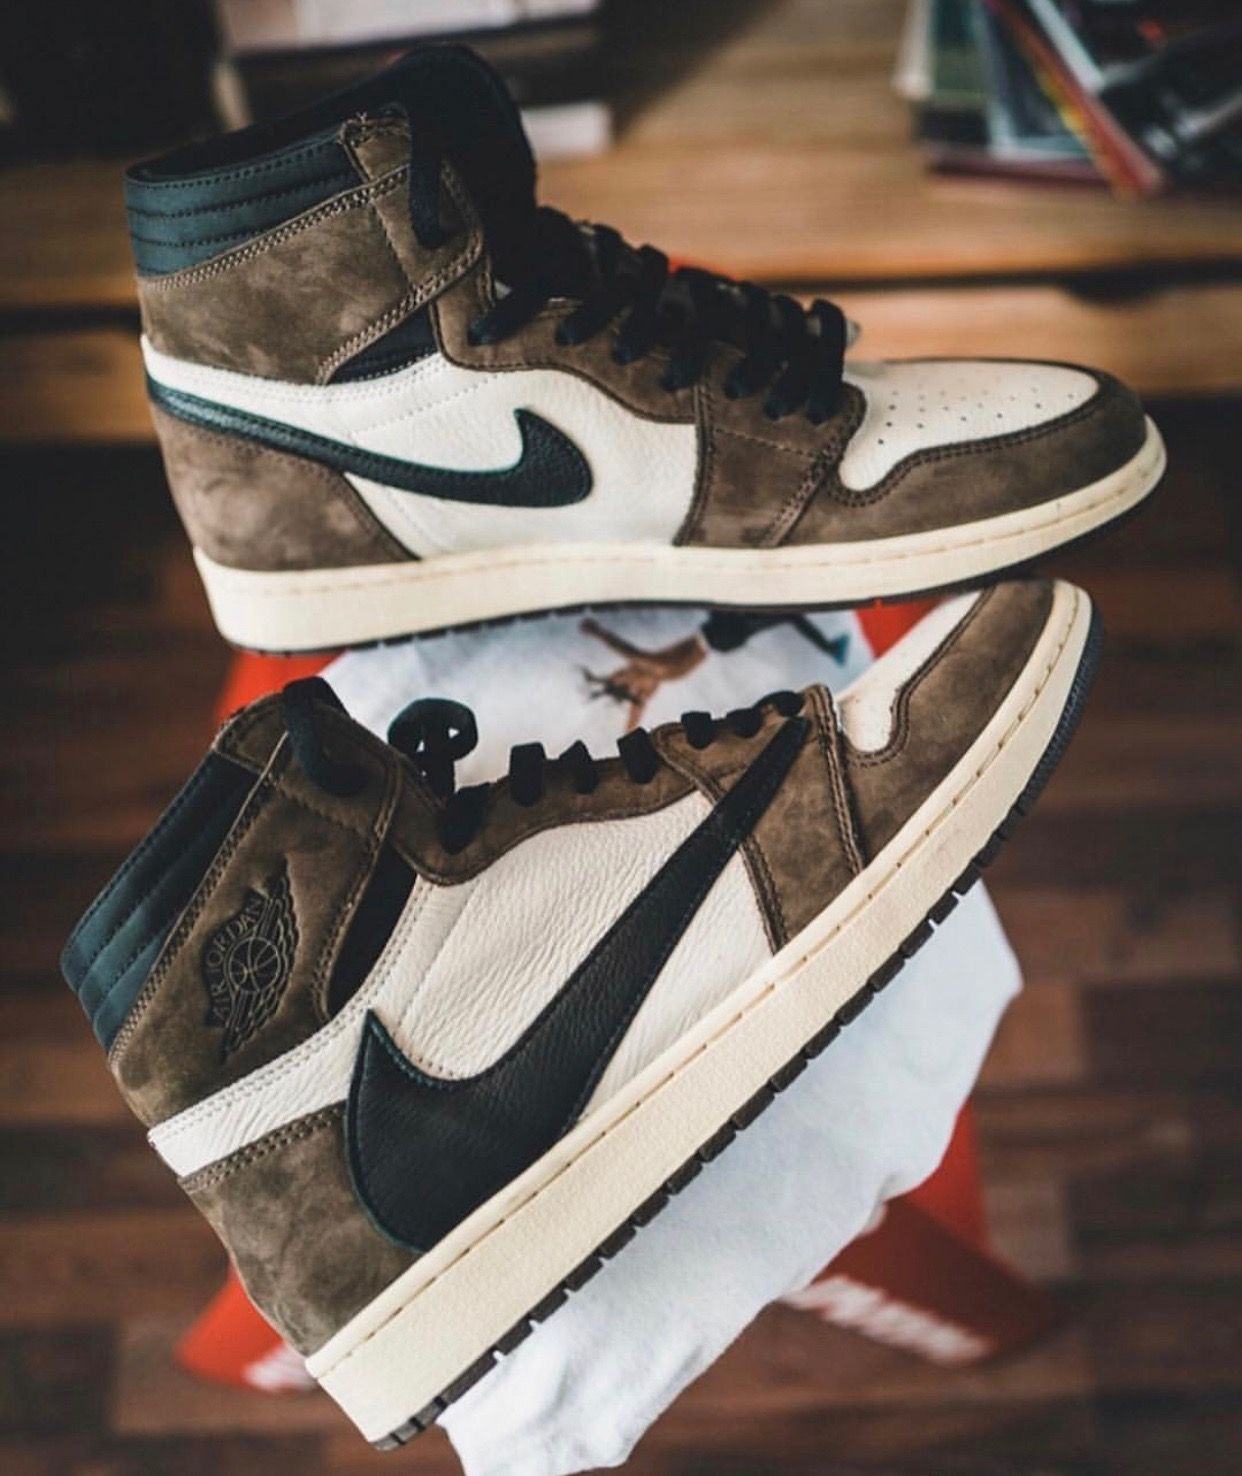 travis scott air jordan 1 cactus jacks sneakers men fashion hype shoes shoes sneakers nike travis scott air jordan 1 cactus jacks